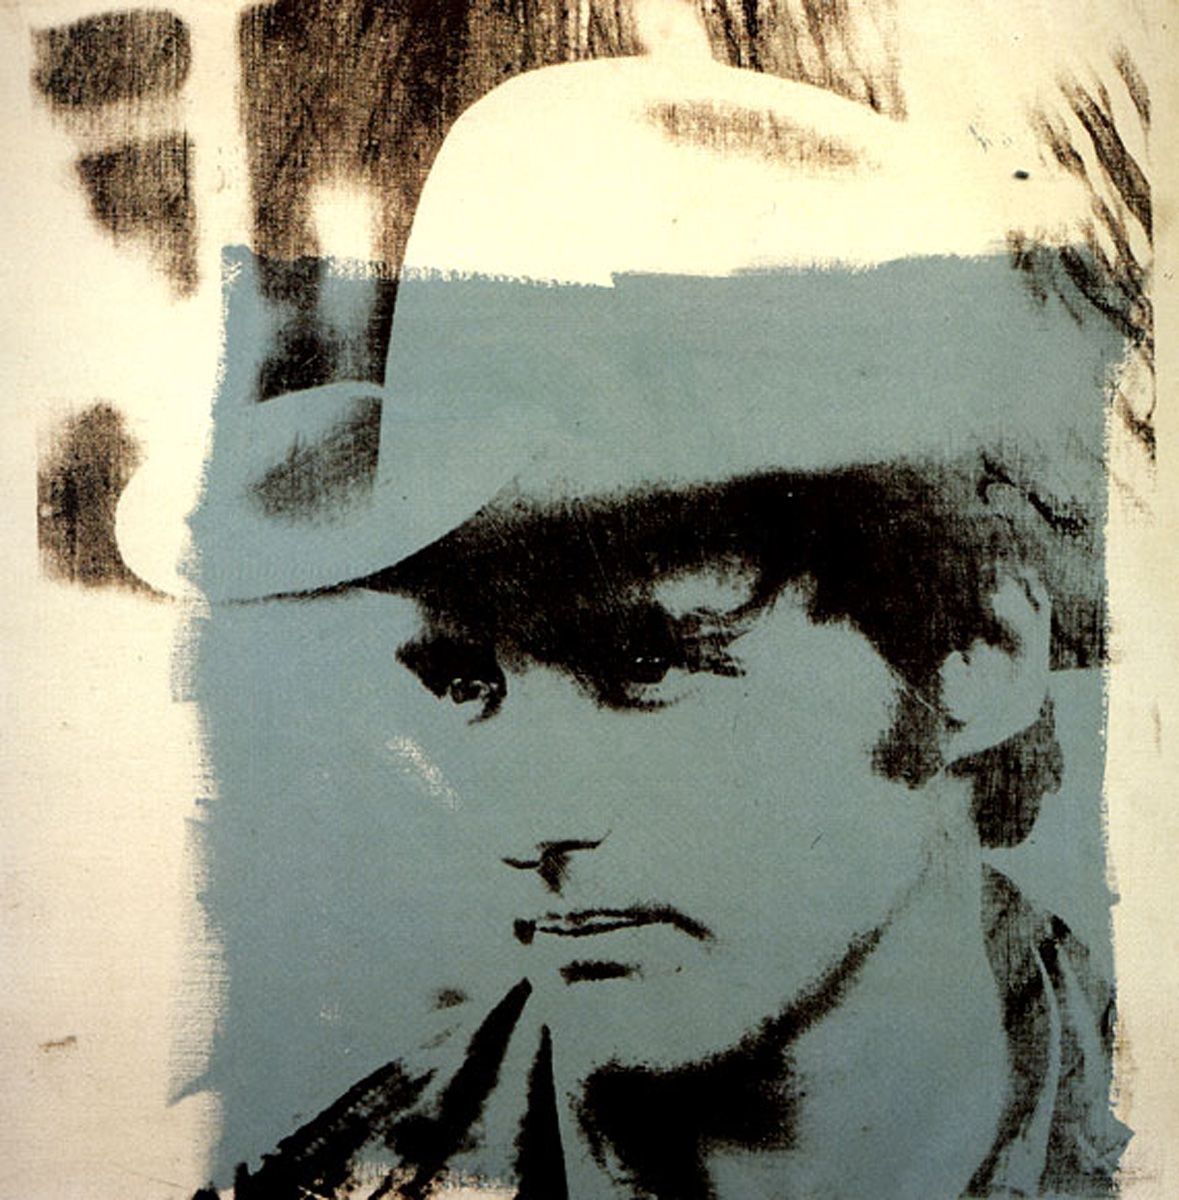 Dennis Hopper by Andy Warhol